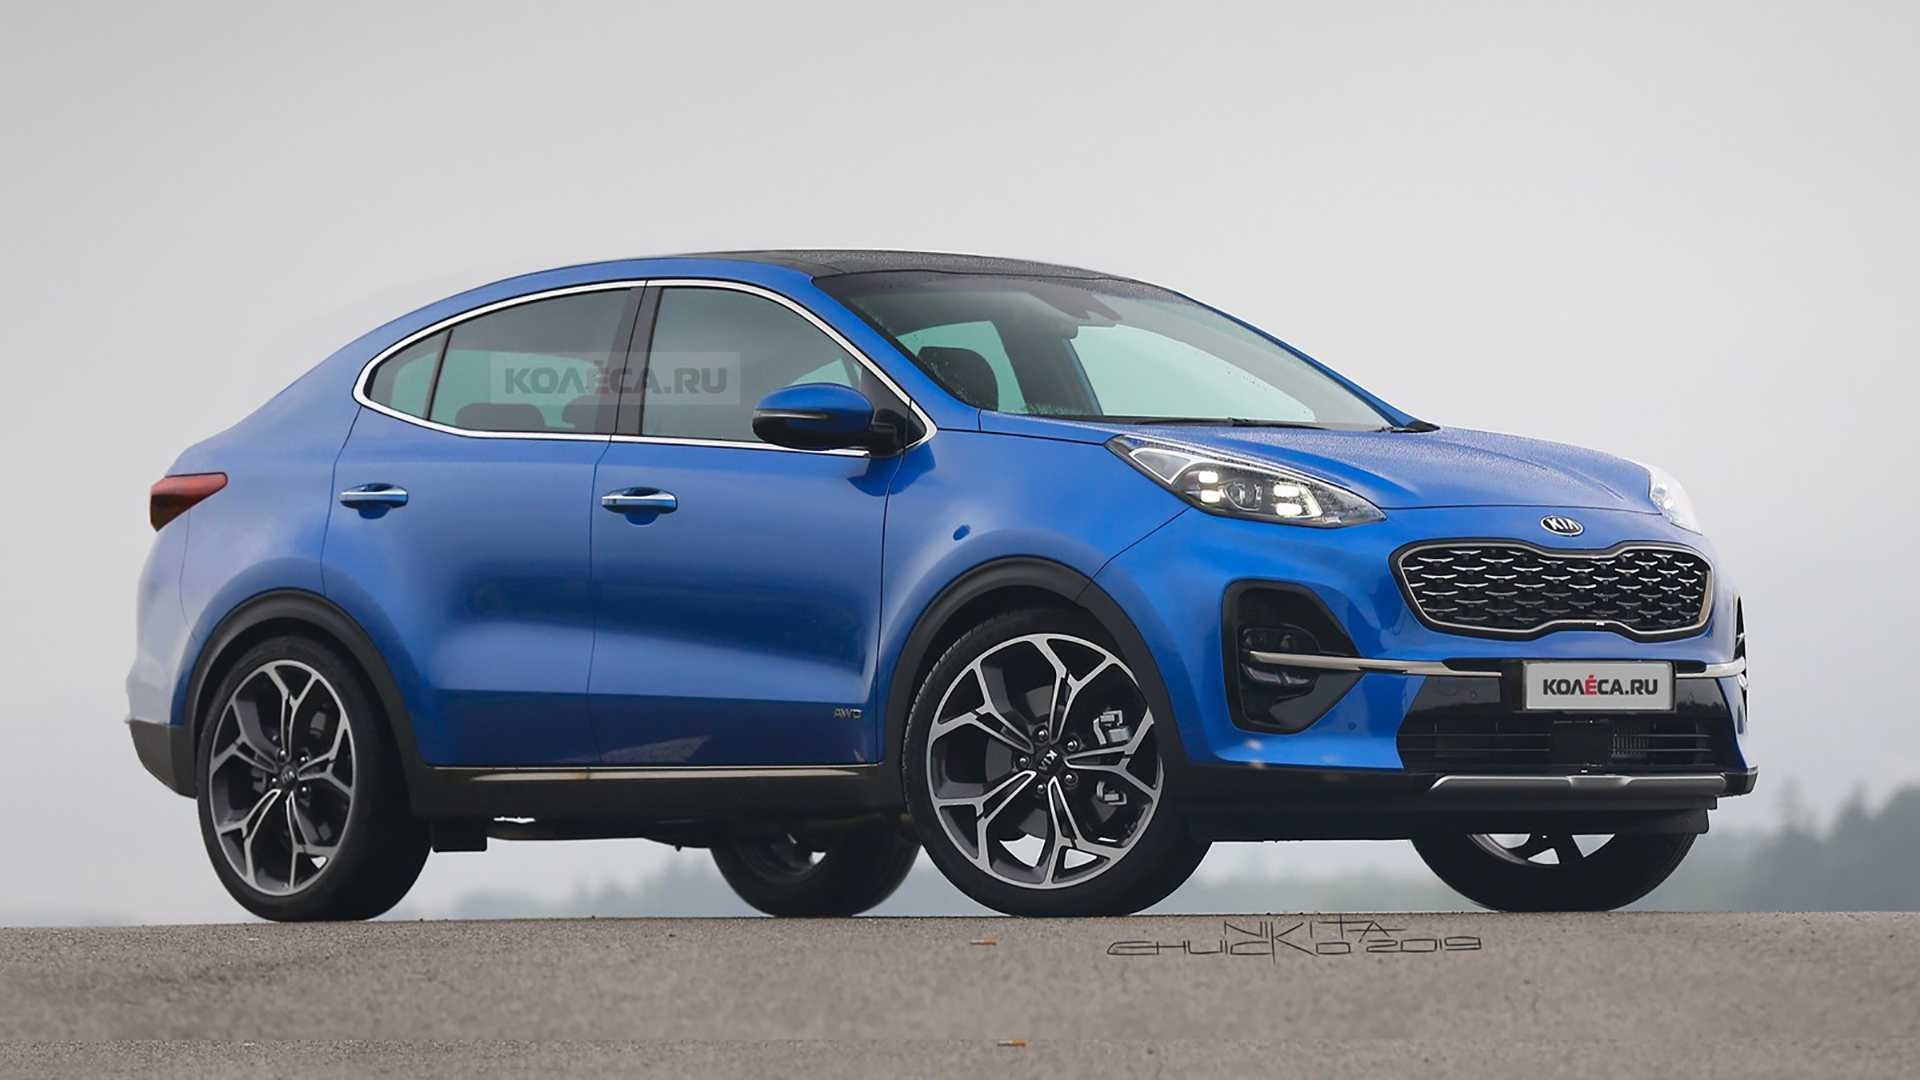 How Does Kia Sportage Look with this Coupe SUV Treatment? 5